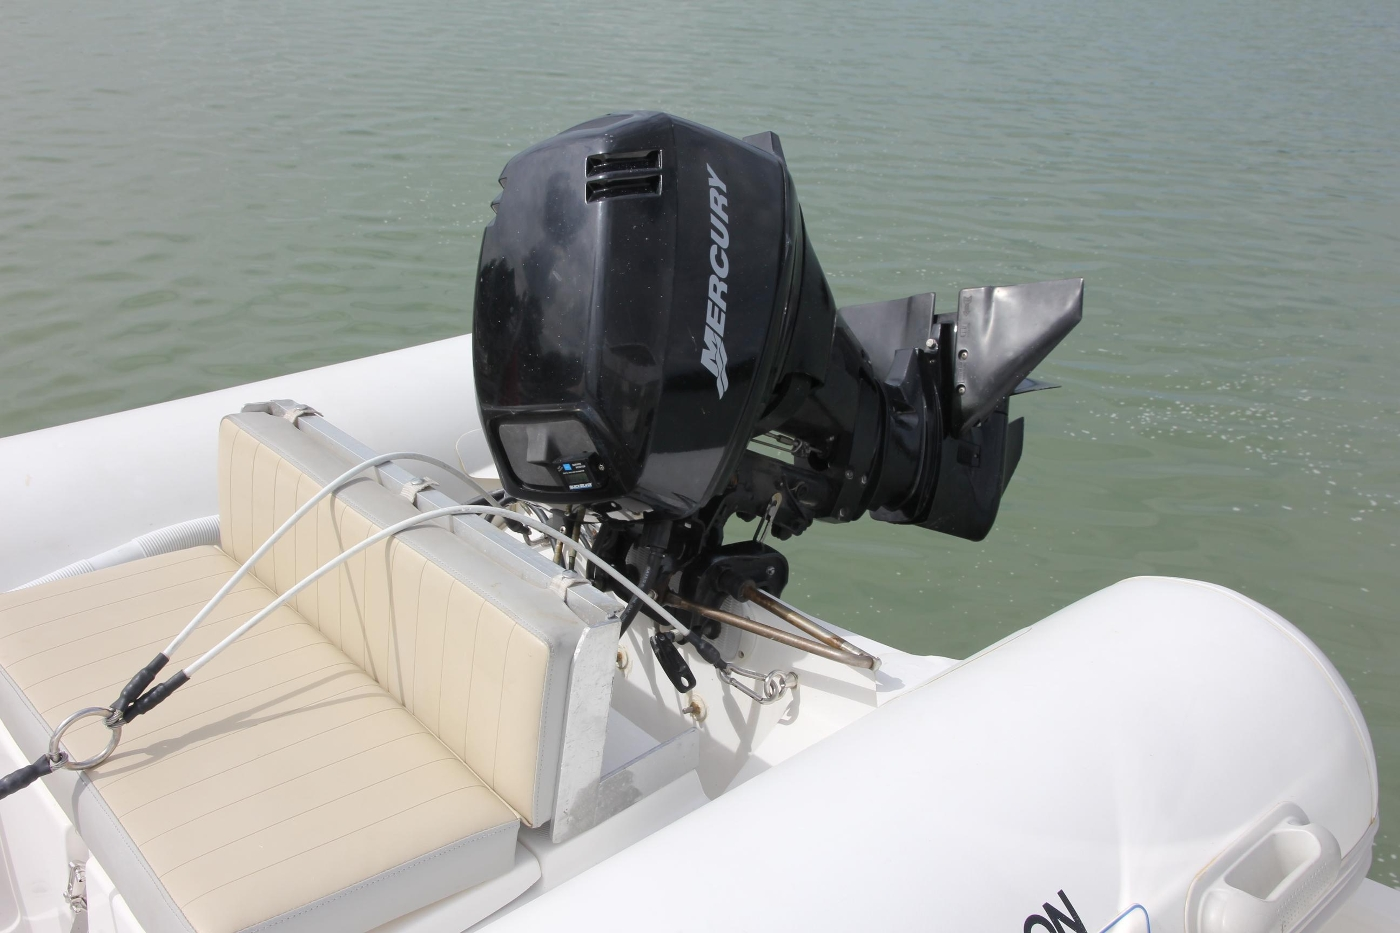 2005 Carver 560 Voyager Pilothouse, Outboard